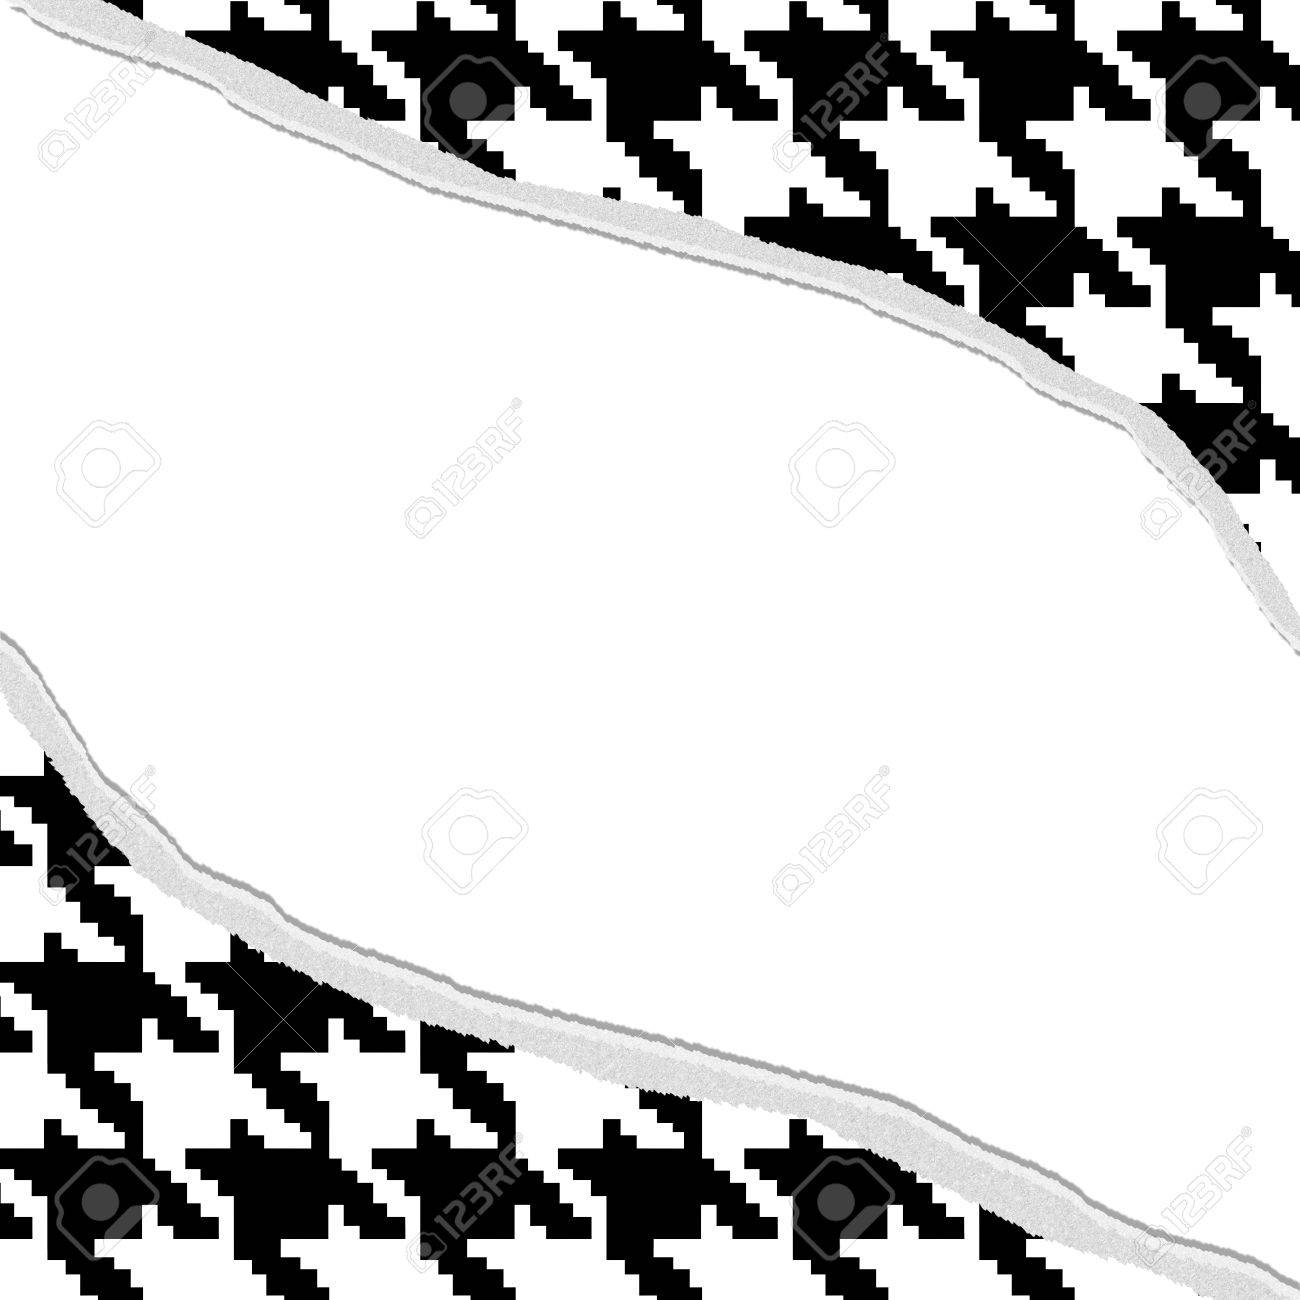 houndstooth torn background for your message or invitation with